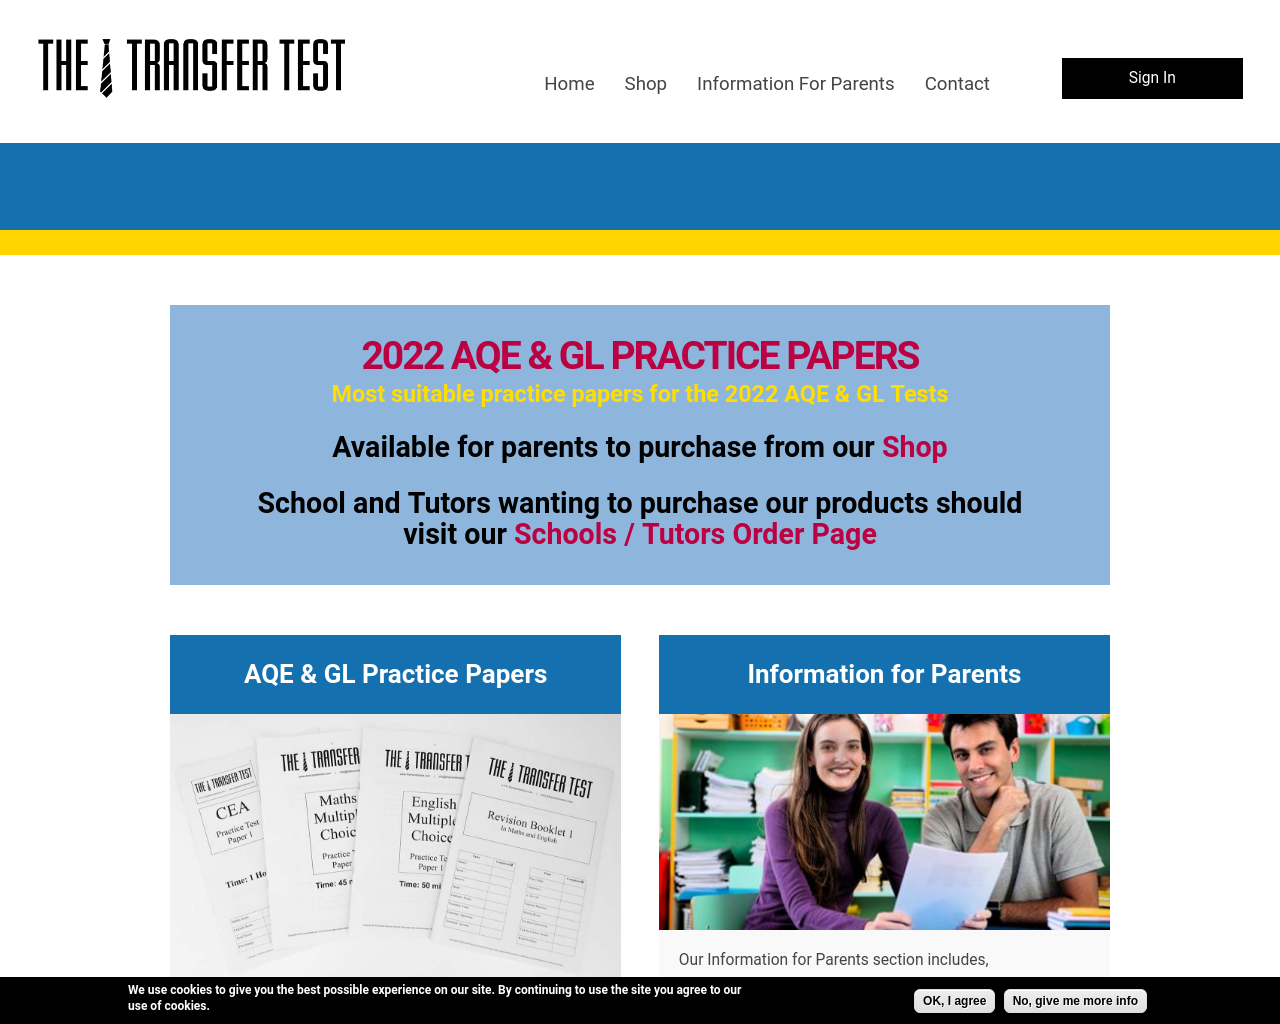 The Transfer Test